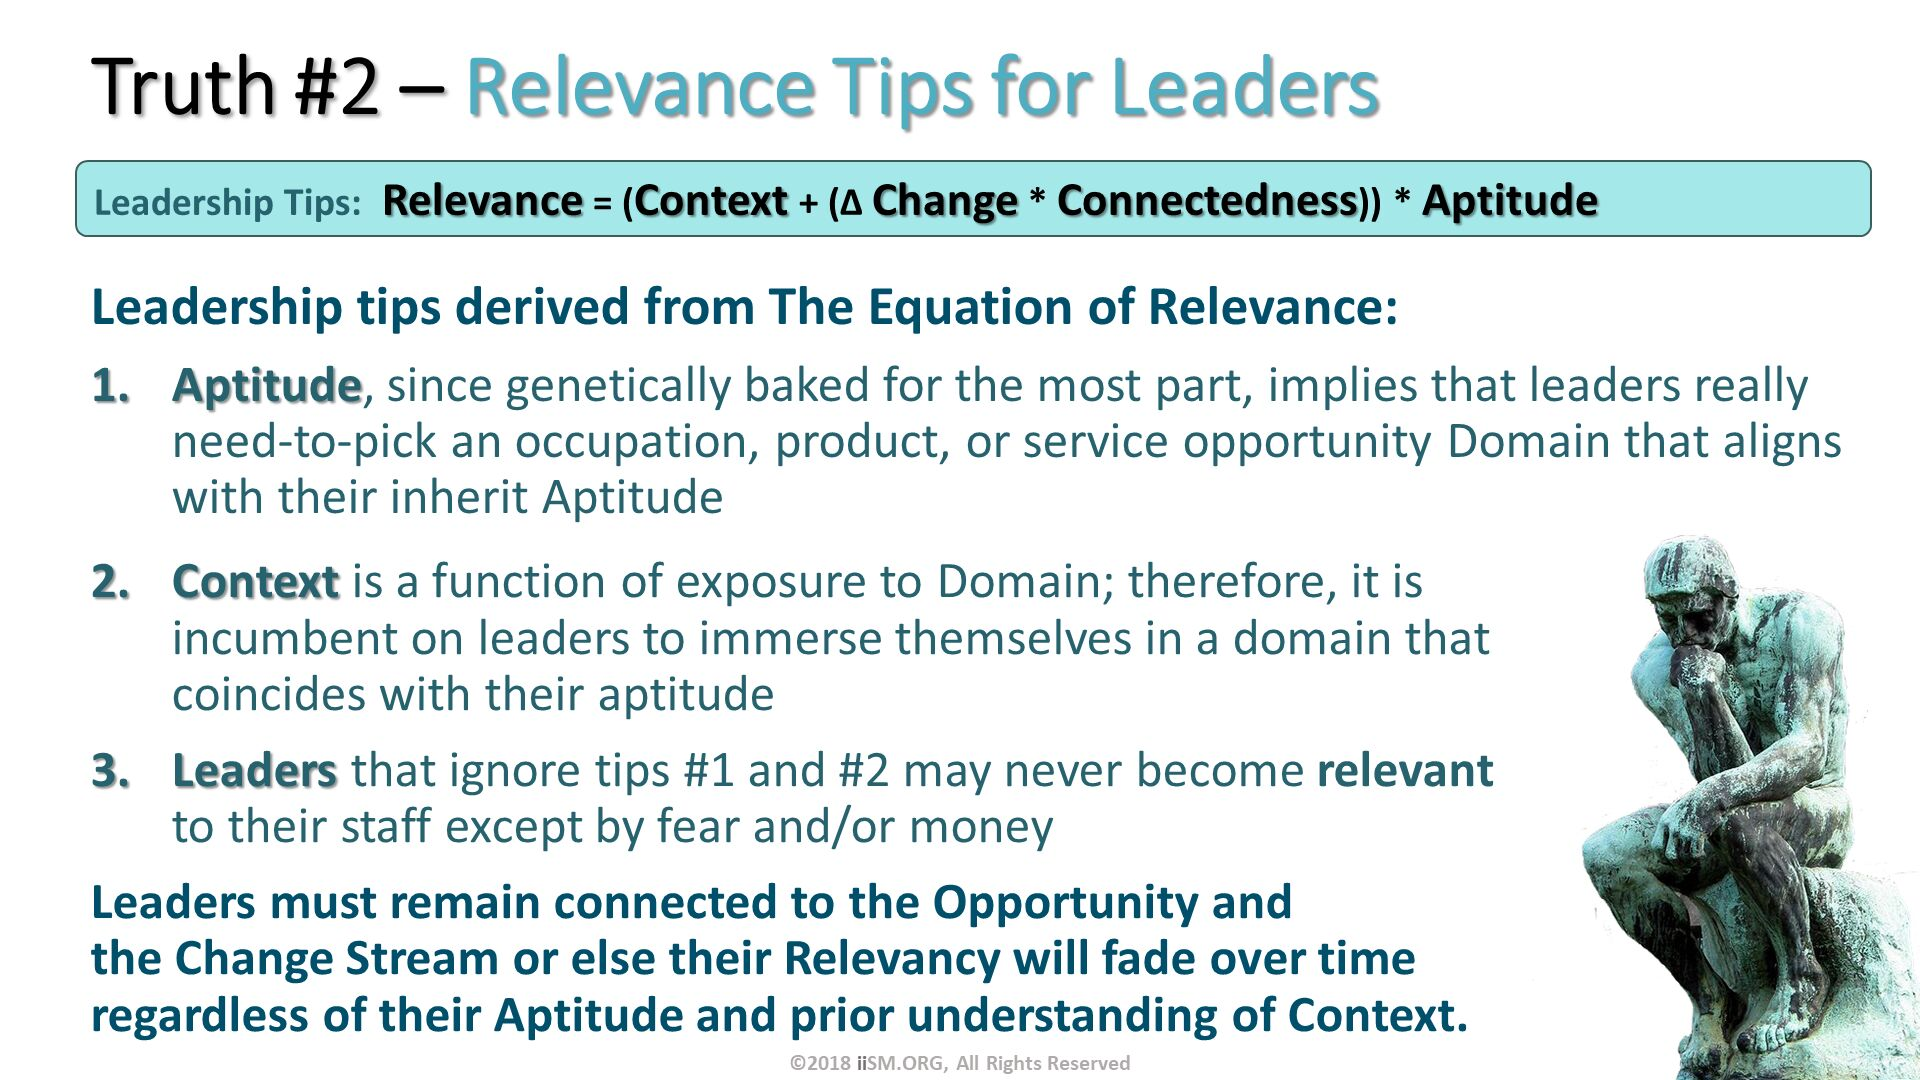 Truth #2 – Relevance Tips for Leaders. Leadership tips derived from The Equation of Relevance:  Aptitude, since genetically baked for the most part, implies that leaders really need-to-pick an occupation, product, or service opportunity Domain that aligns with their inherit Aptitude. Leadership Tips:	Relevance = (Context + (∆ Change * Connectedness)) * Aptitude . Context is a function of exposure to Domain; therefore, it is incumbent on leaders to immerse themselves in a domain that coincides with their aptitude Leaders that ignore tips #1 and #2 may never become relevant to their staff except by fear and/or money Leaders must remain connected to the Opportunity and the Change Stream or else their Relevancy will fade over time regardless of their Aptitude and prior understanding of Context. . ©2018 iiSM.ORG, All Rights Reserved.